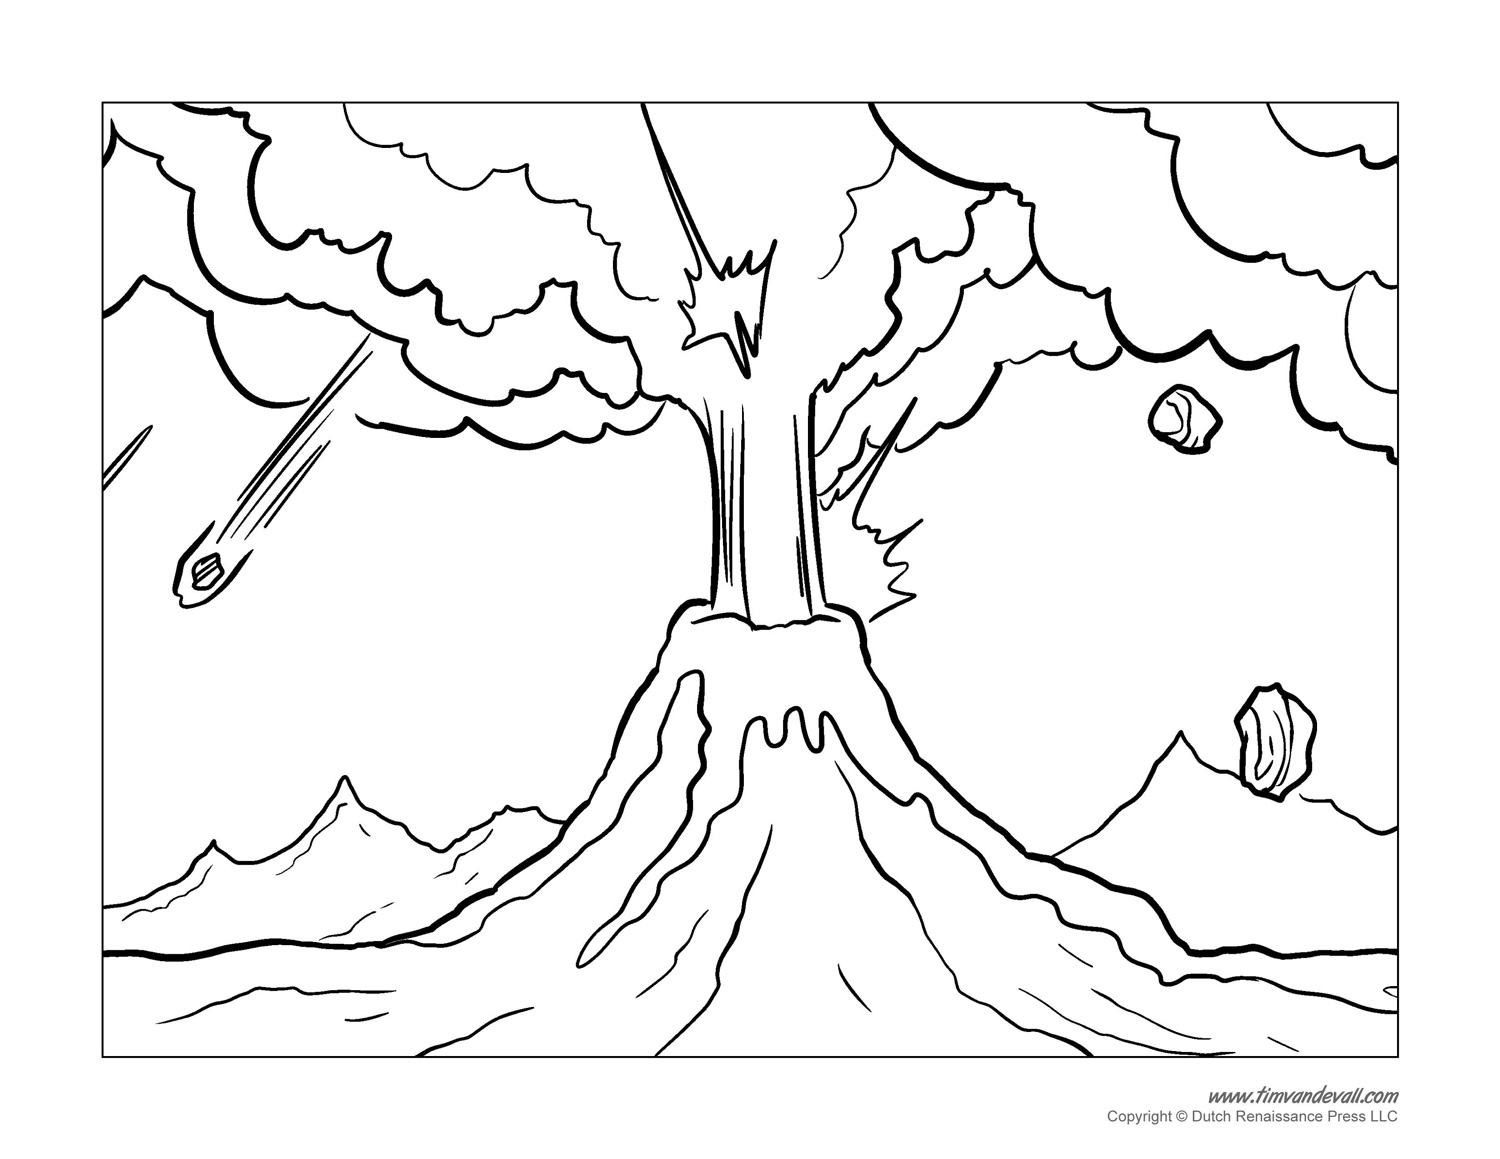 hight resolution of Volcano Coloring Pages